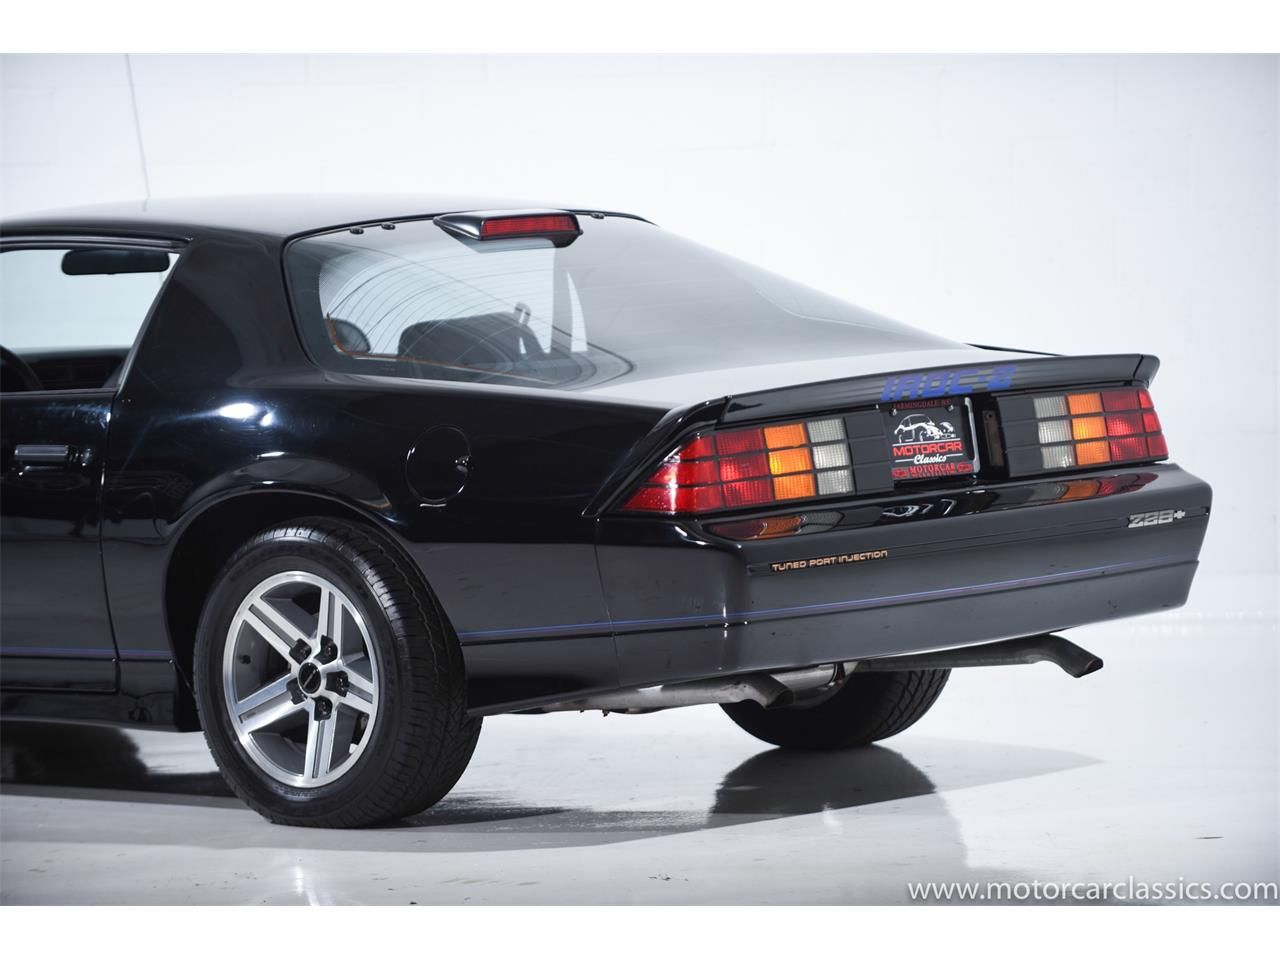 1986 Chevrolet Camaro (CC-1298255) for sale in Farmingdale, New York